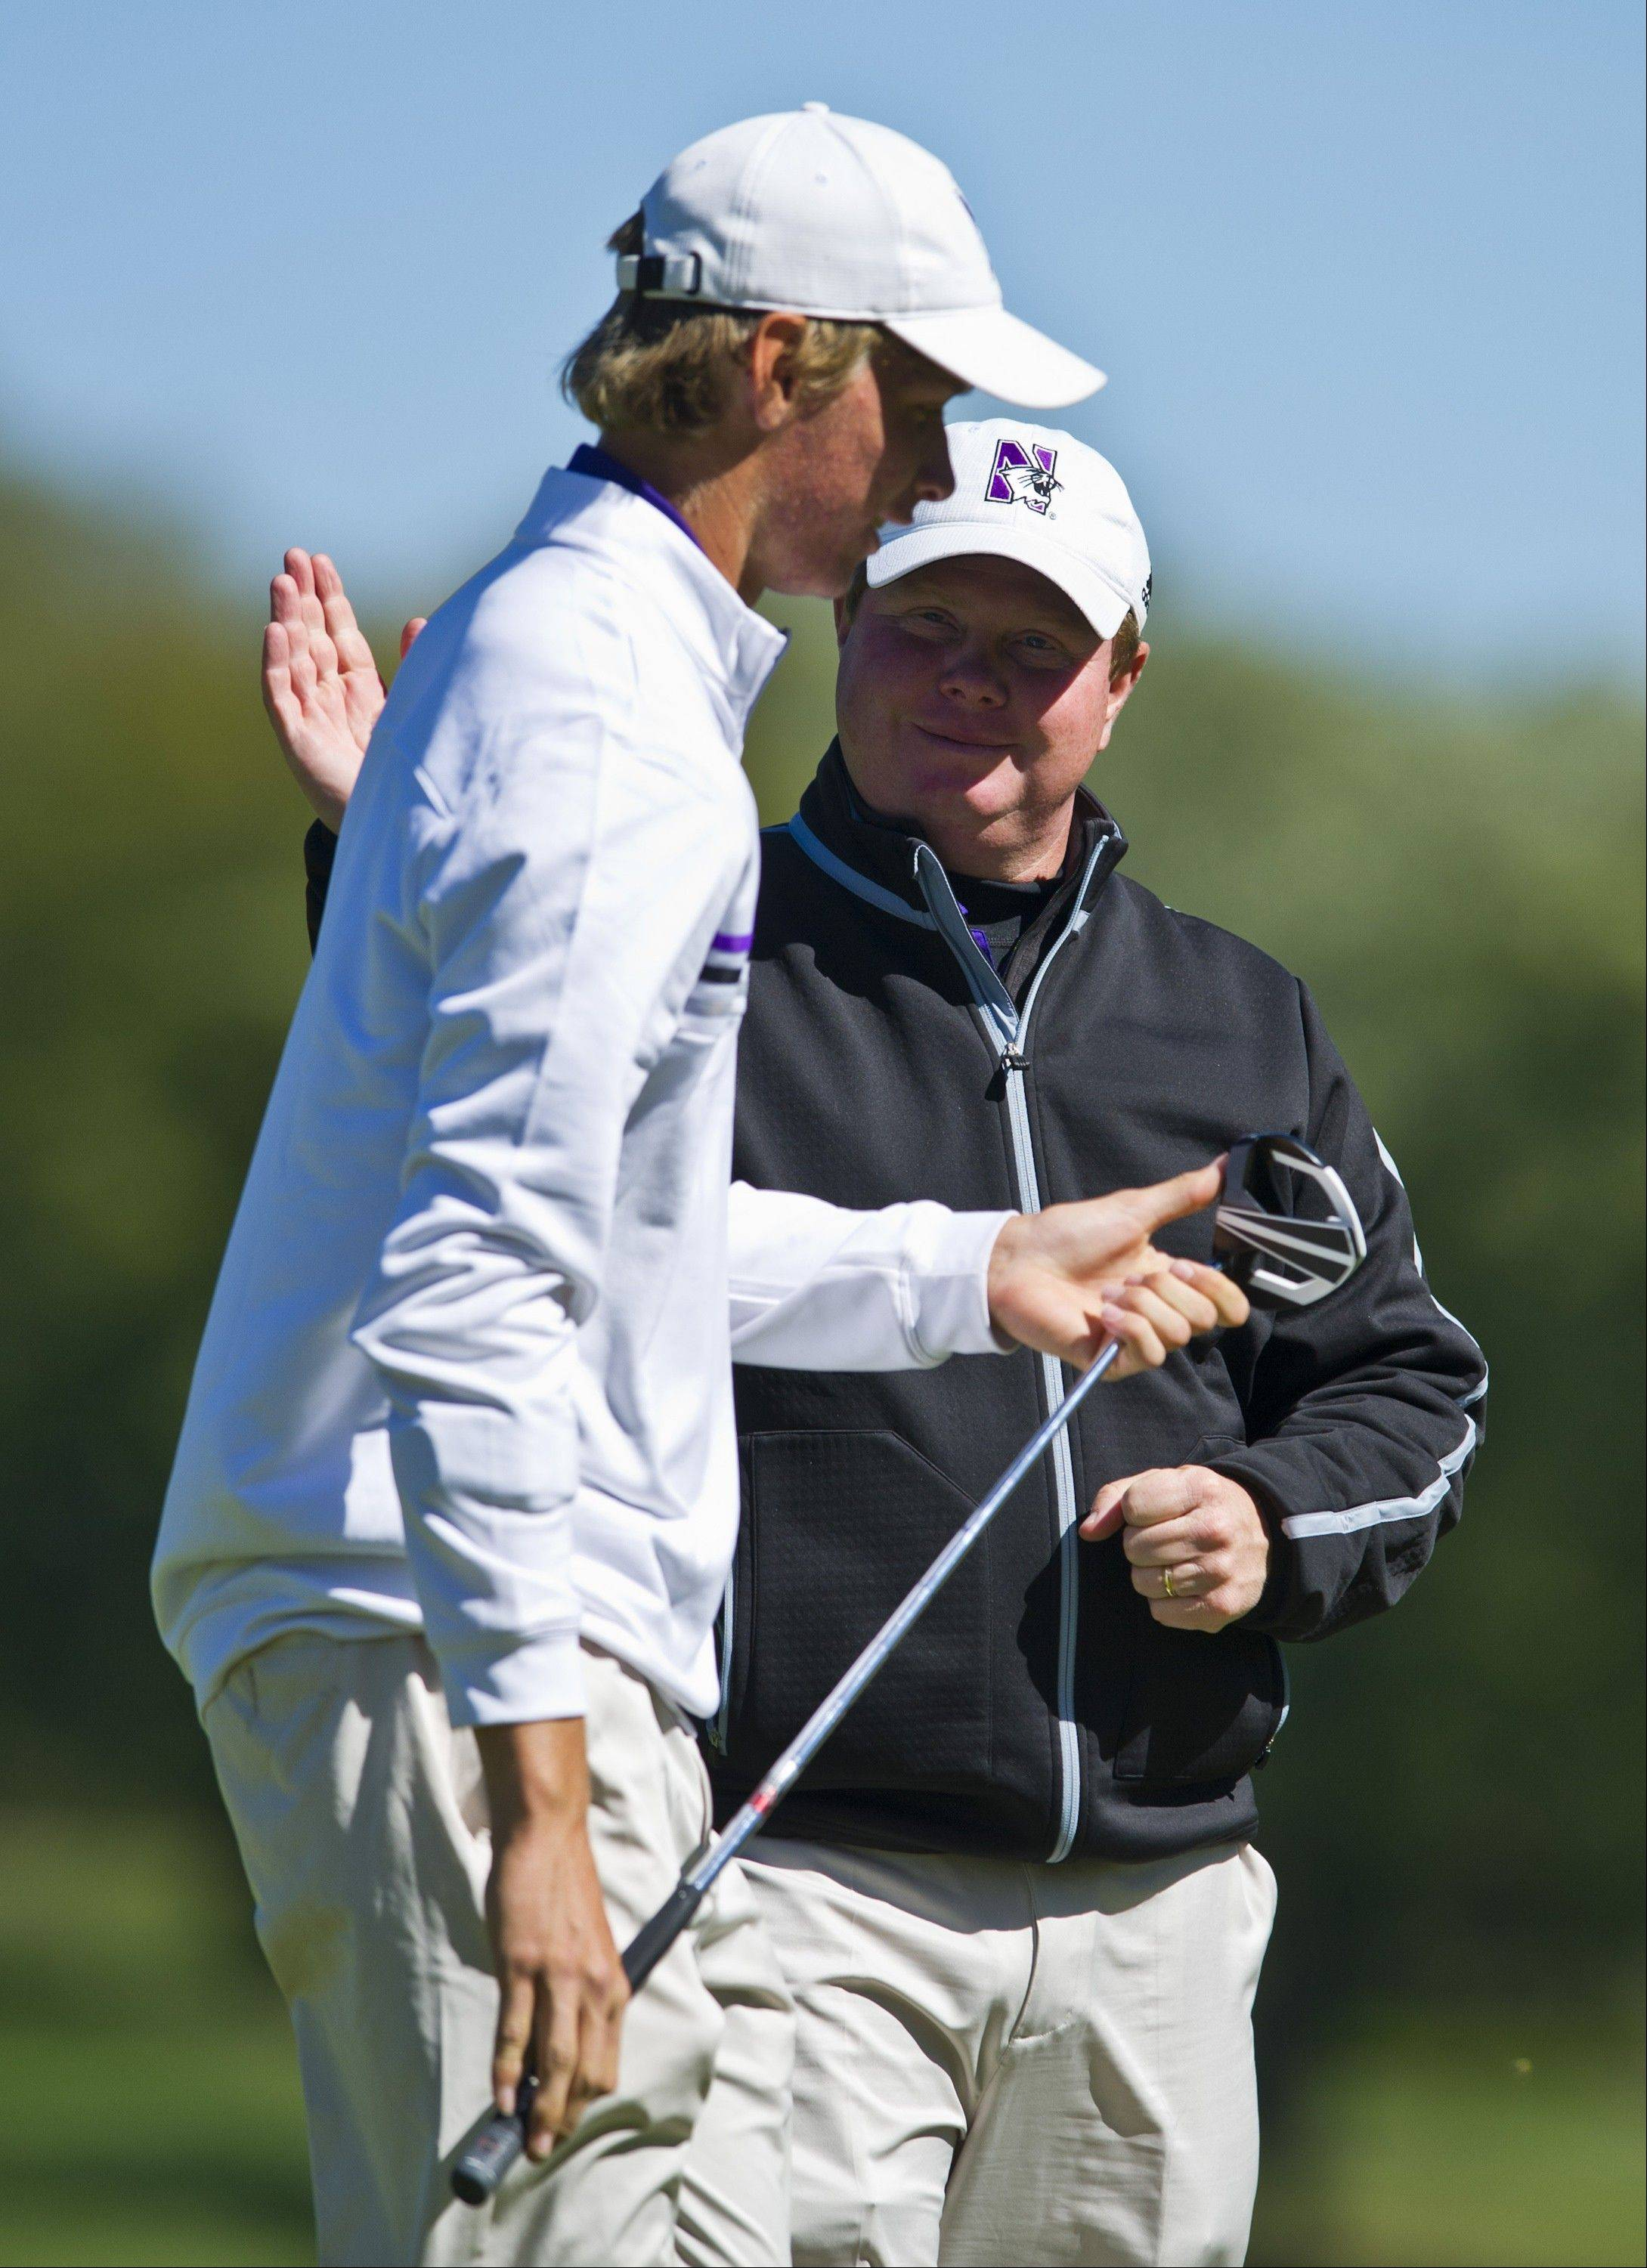 Northwestern men's golf coach Pat Goss, right, has been presented the Labron Harris Sr. Award, a national honor in cooperation with The PGA of America and the Golf Coaches Association of America.